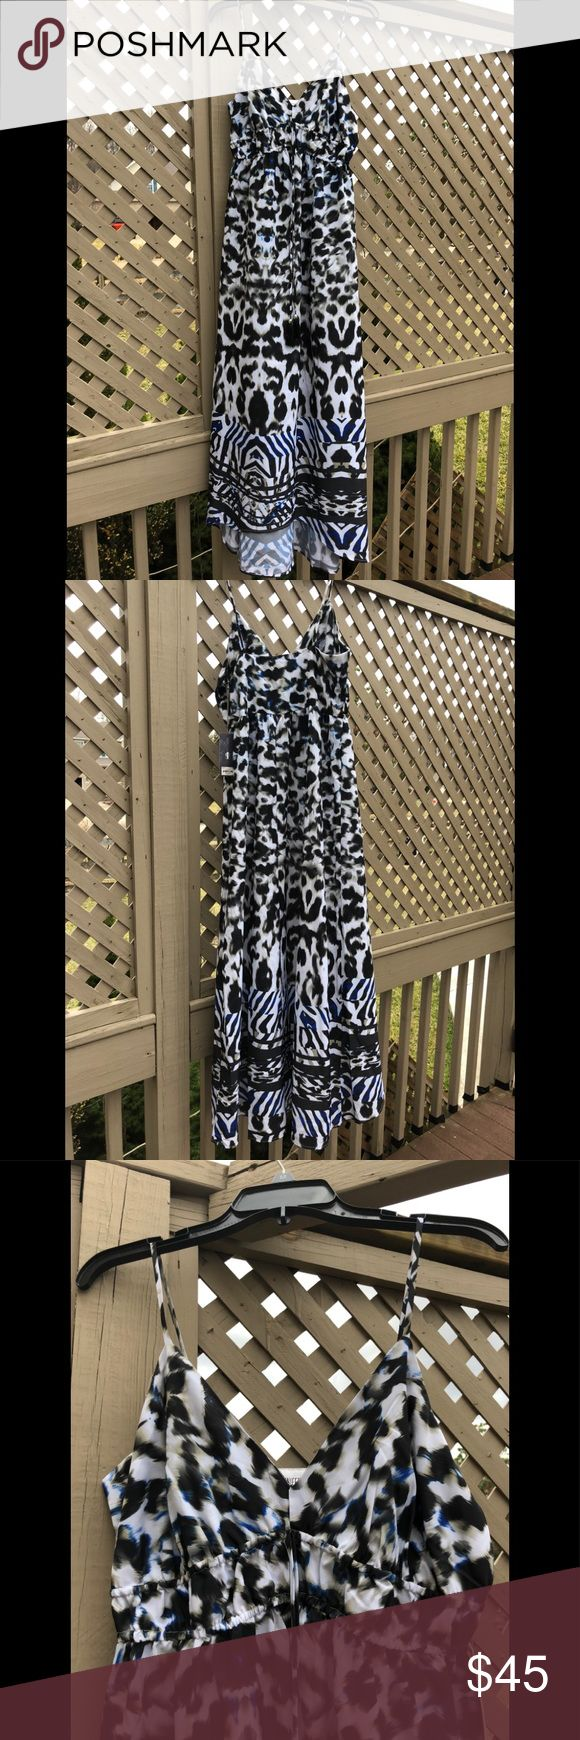 NWT Jennifer Lopez Animal Print Cami Maxi Dress New and Unworn Jennifer Lopez Tonal Animal Print Cami Maxi Dress Dress in a mix of Blacks and White with shuttle splash's is blue throughout Dress material is 100% Polyester Jennifer Lopez Dresses Maxi